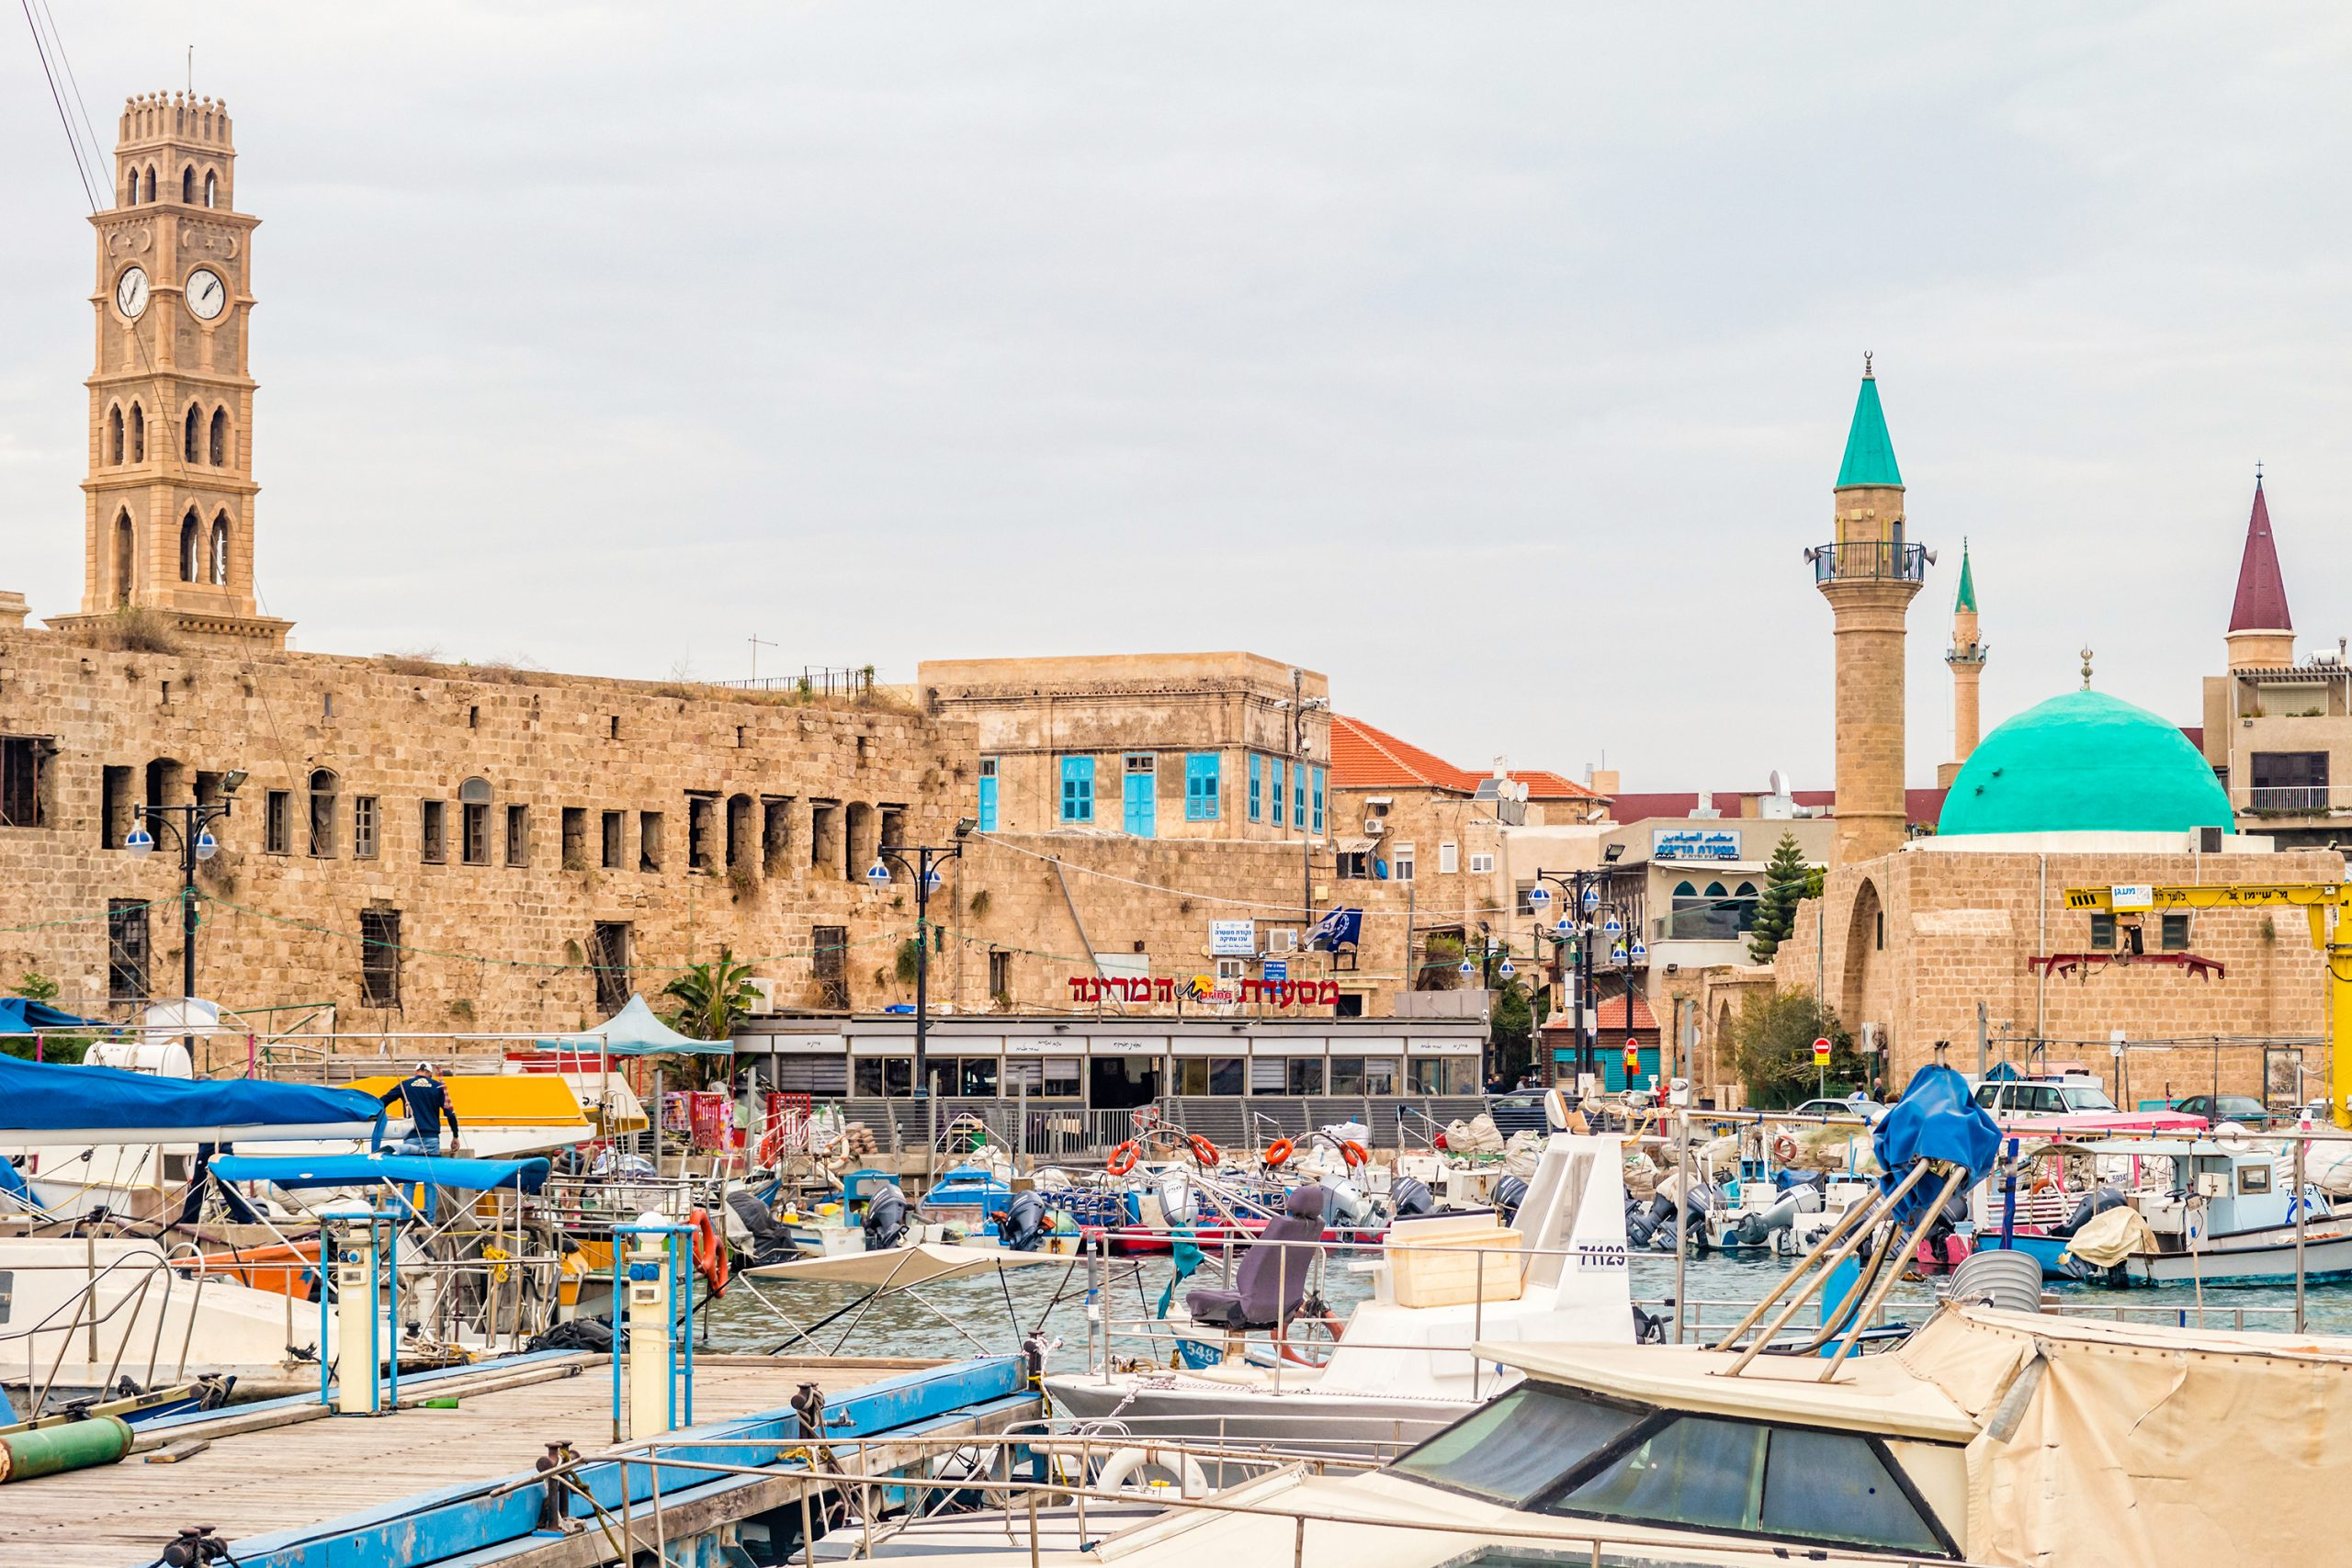 The Marina and the Old City of Akko, Israel